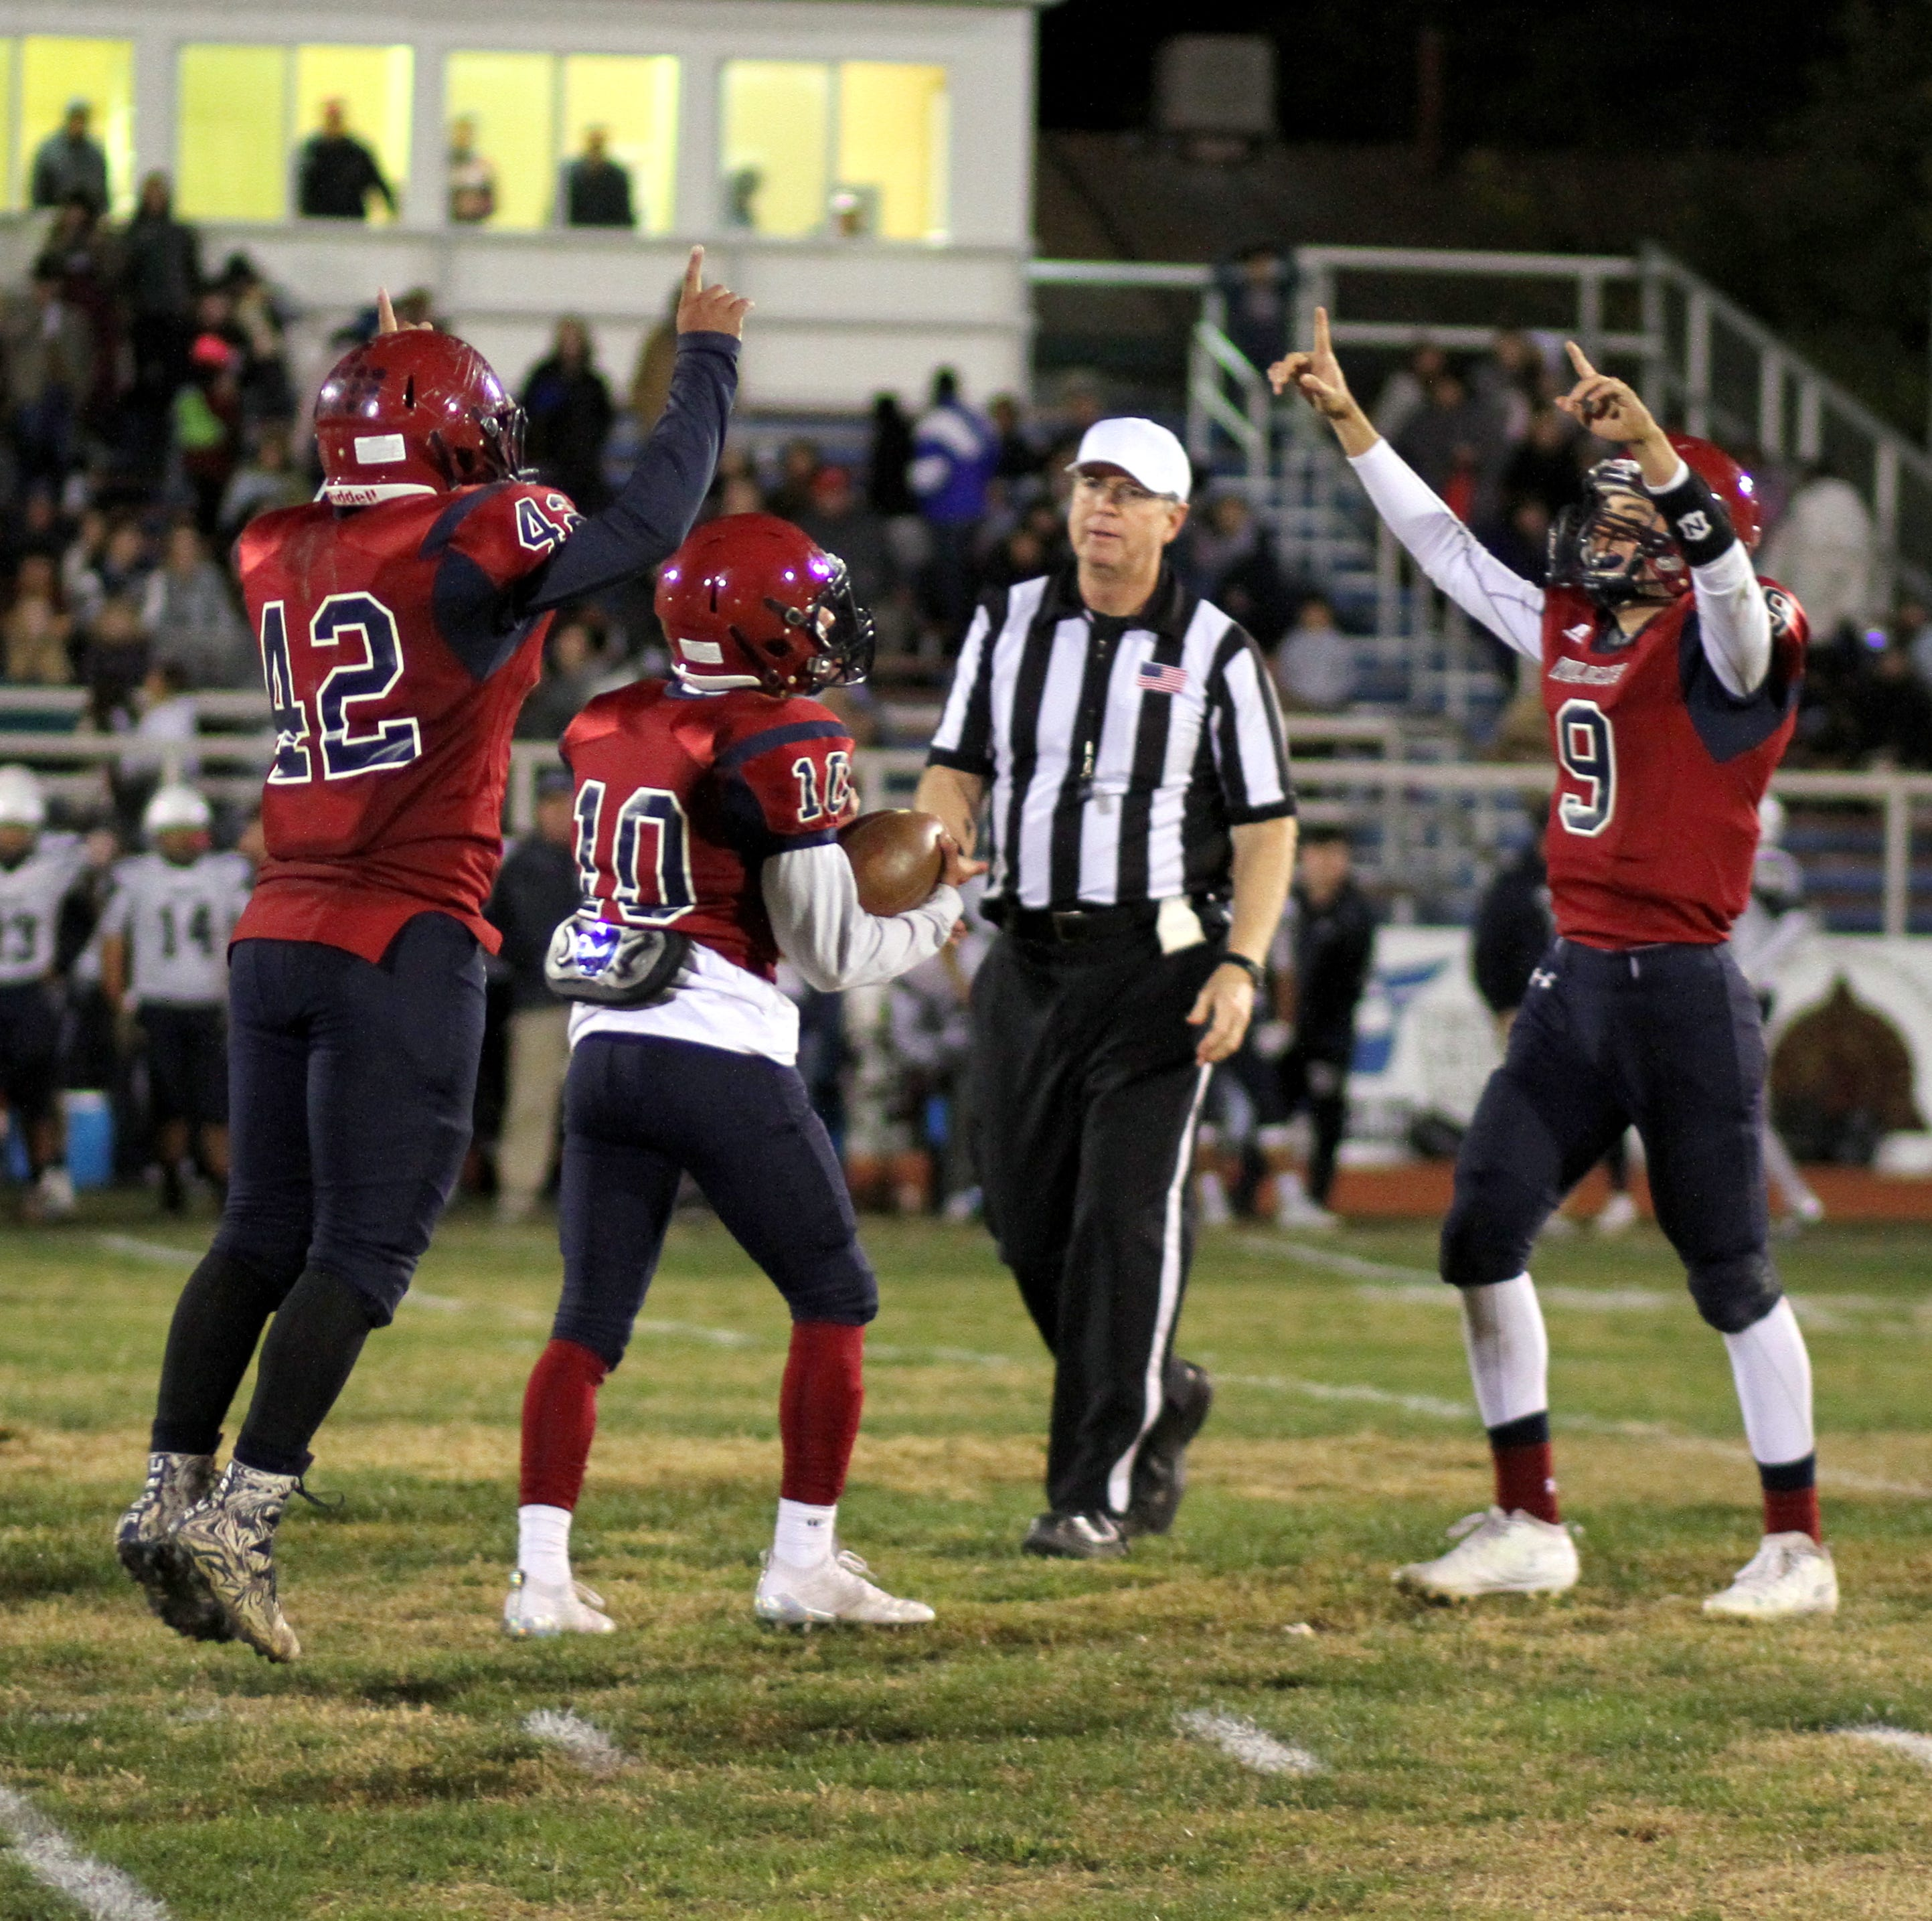 Deming Wildcats claim second straight District 3-5A football championship